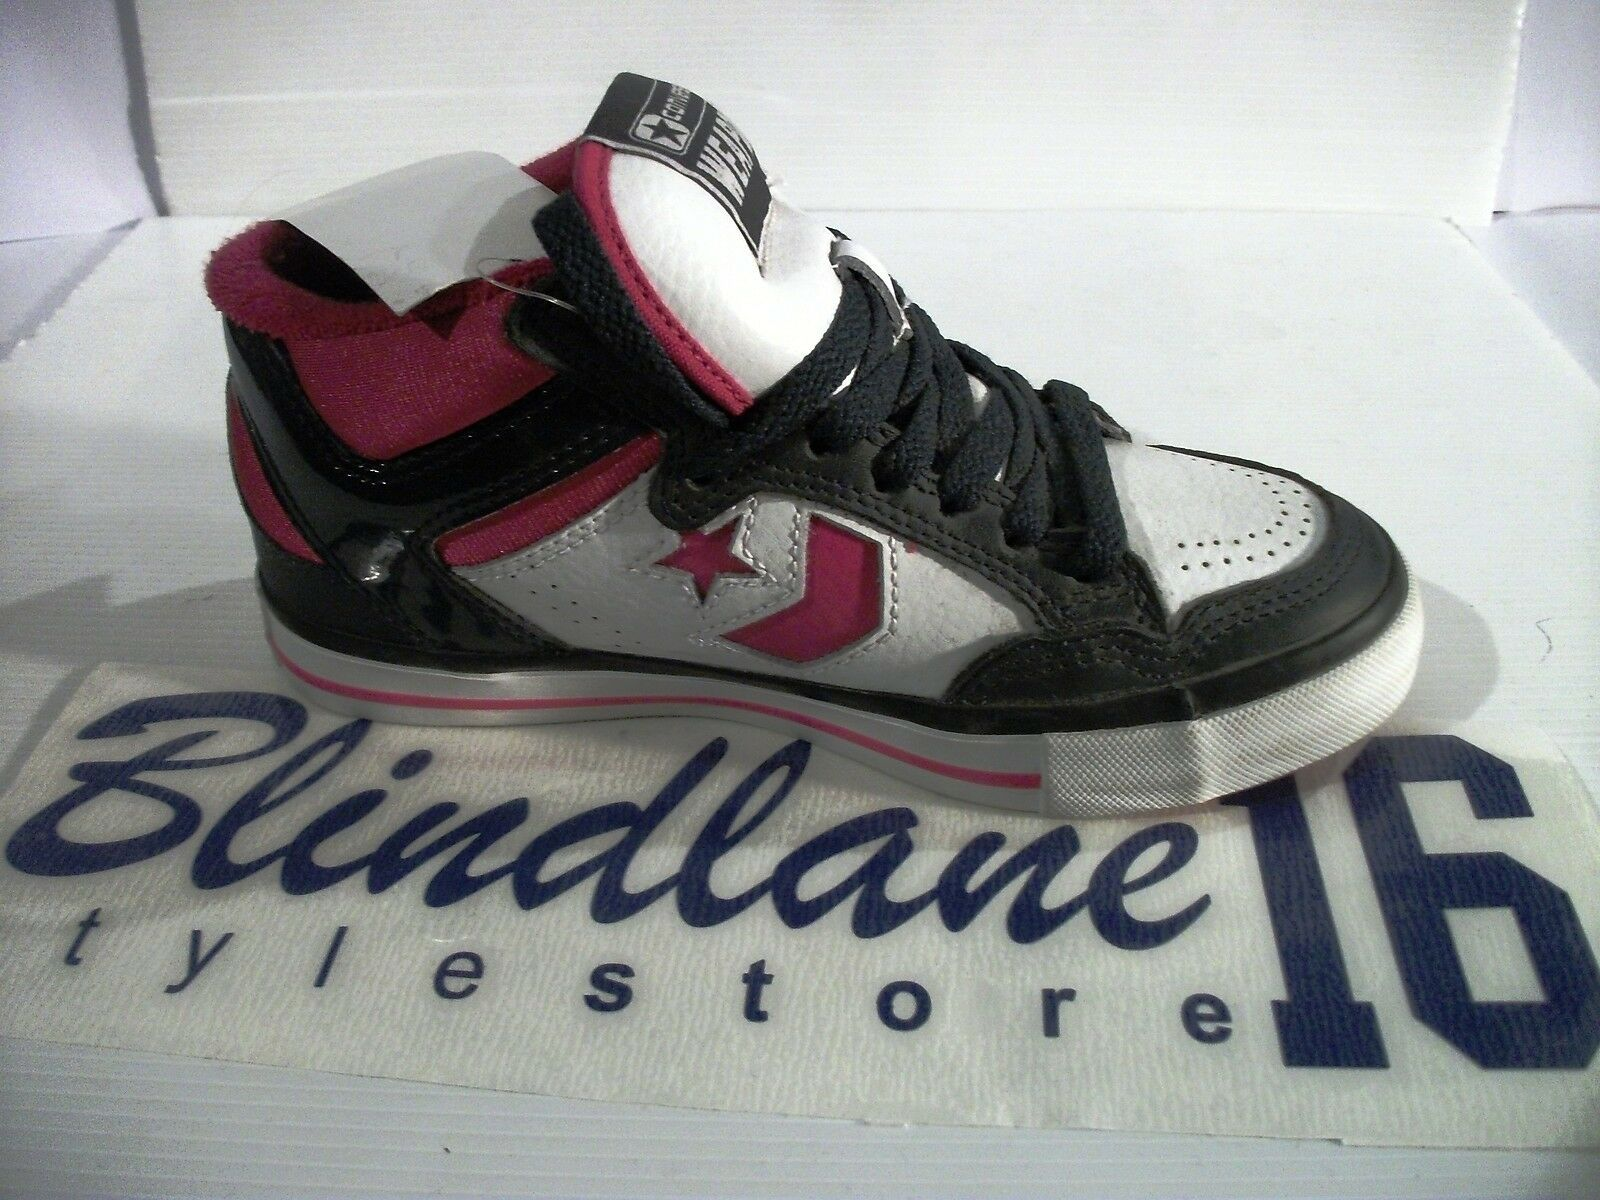 SCARPE CONVERSE LADY WEAPONS MID LEATHER PELLE NERE EUR BIANCHE 518797 EUR NERE N 39 UK6 7dcc96